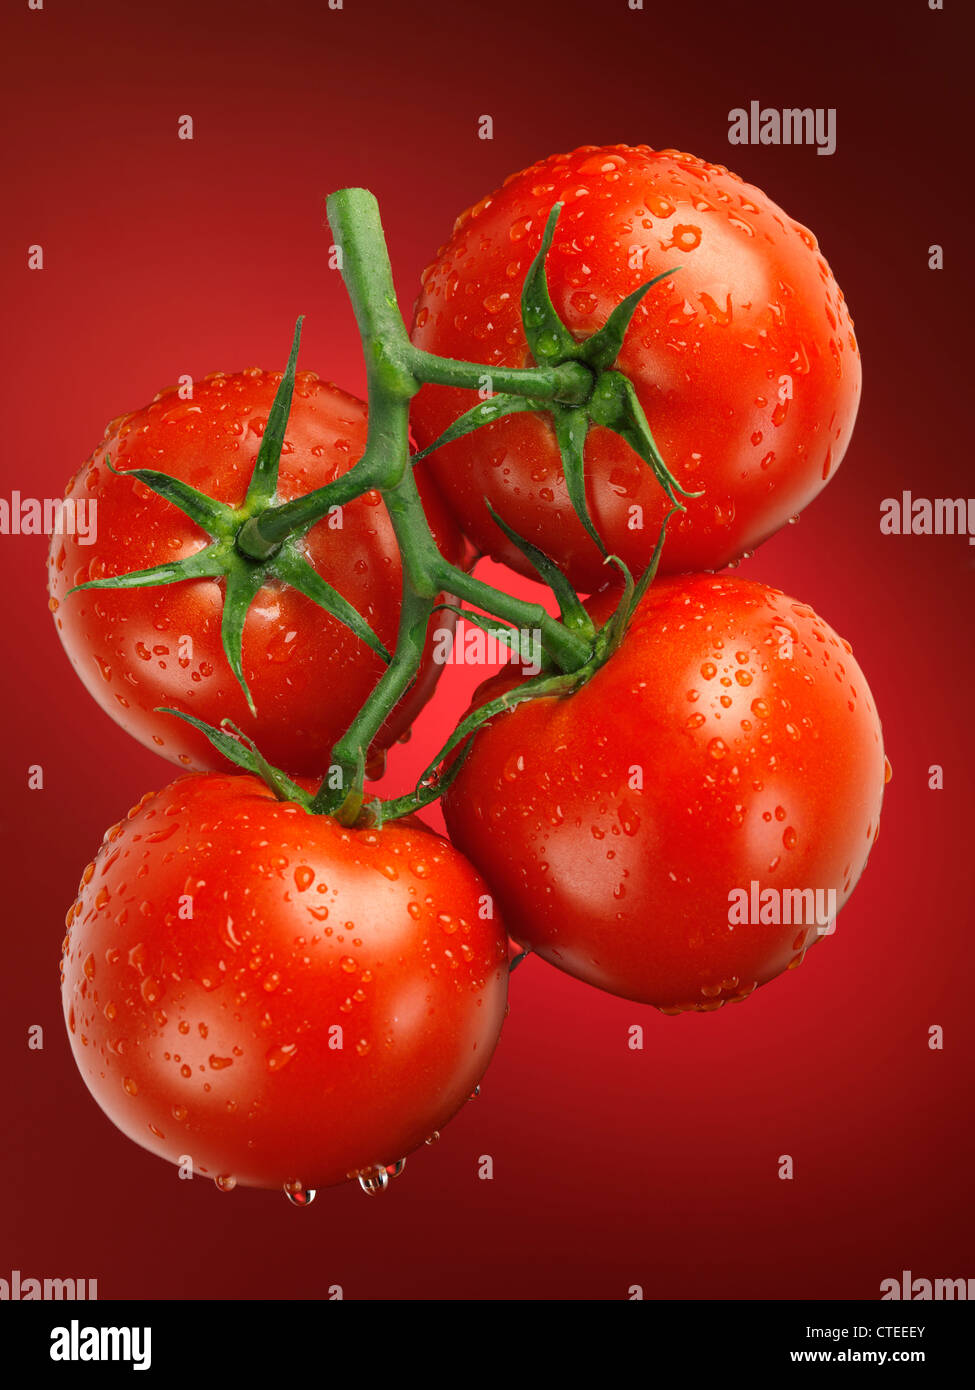 Fresh juicy appetizing tomatoes on the wine sprayed with water. Cluster tomatoes. - Stock Image